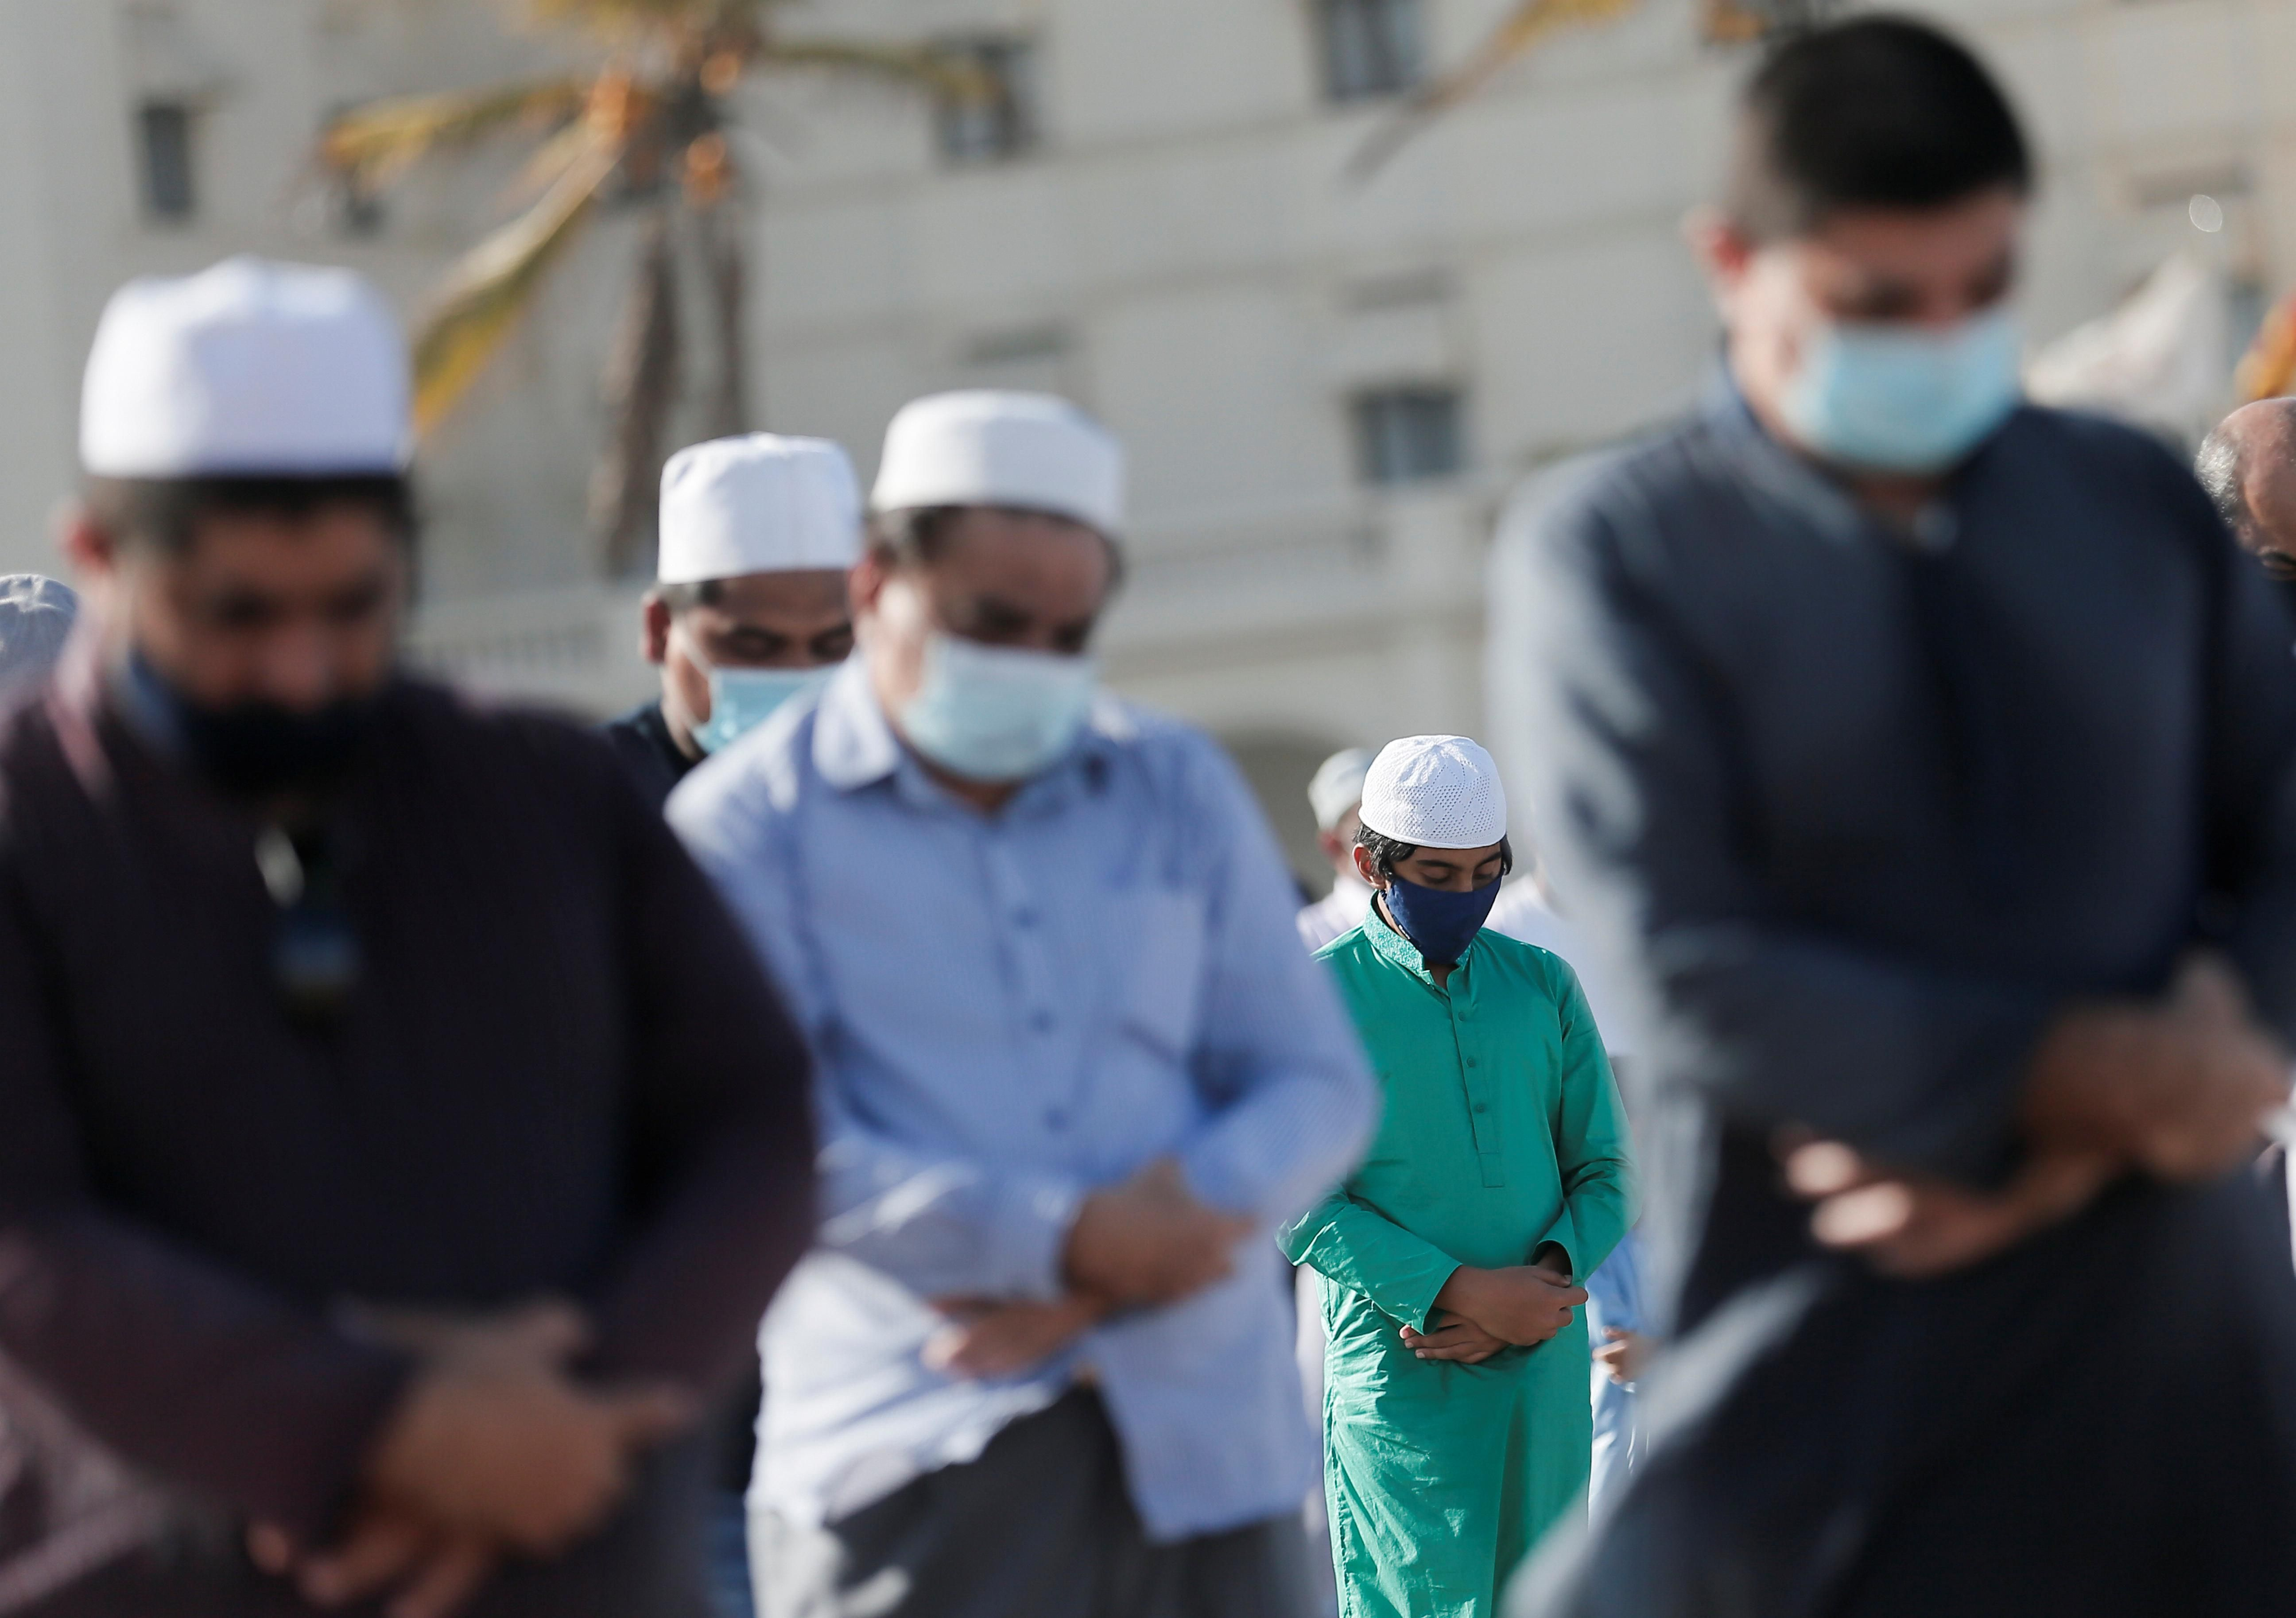 Muslims wearing protective masks practice social distancing as they attend a prayer to mark the Hajj festival, amid concerns about the spread of the coronavirus disease (COVID-19), in Colombo, Sri Lanka, August 1, 2020.